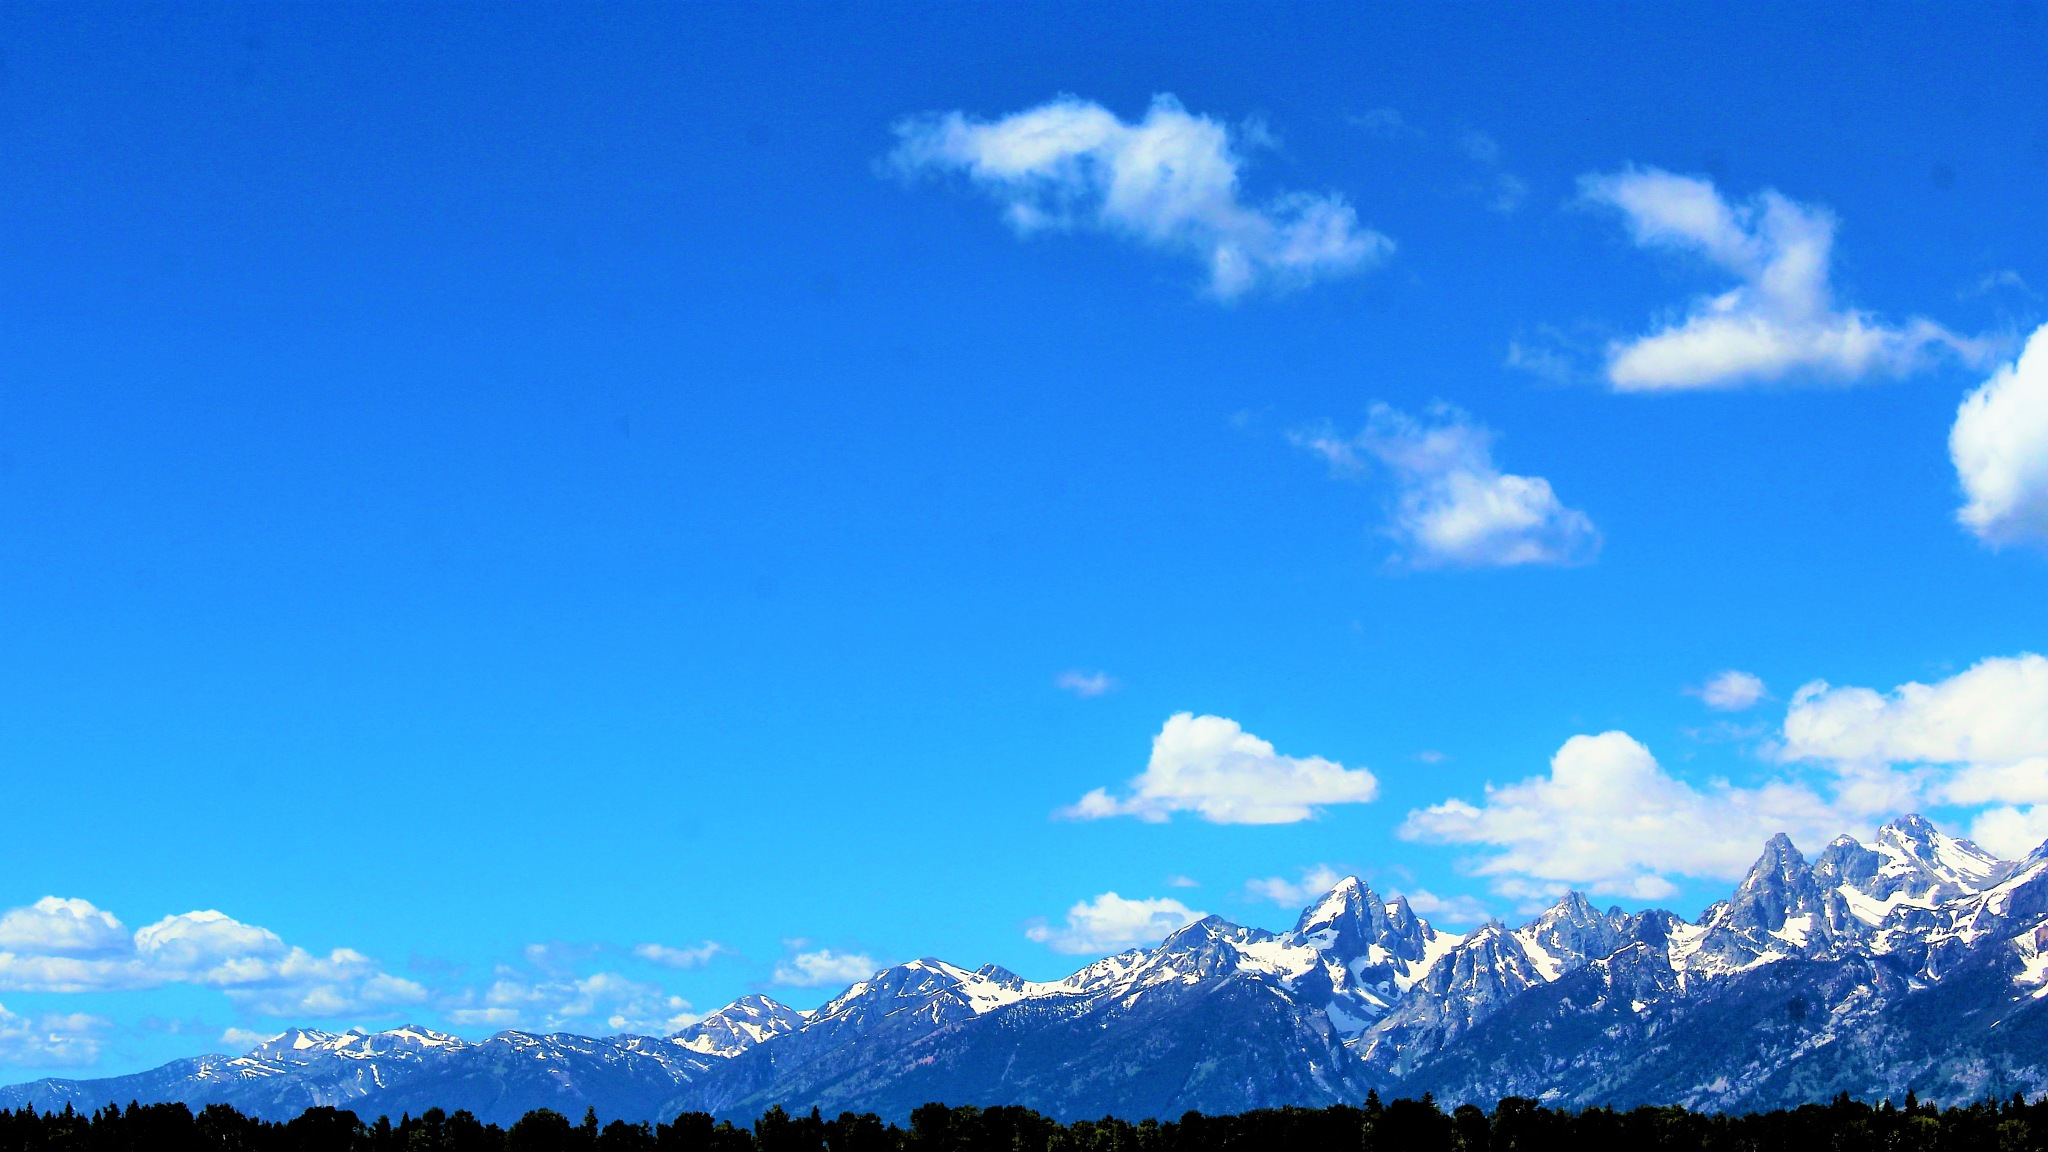 Part of the Grand Tetons by Jim Thoma